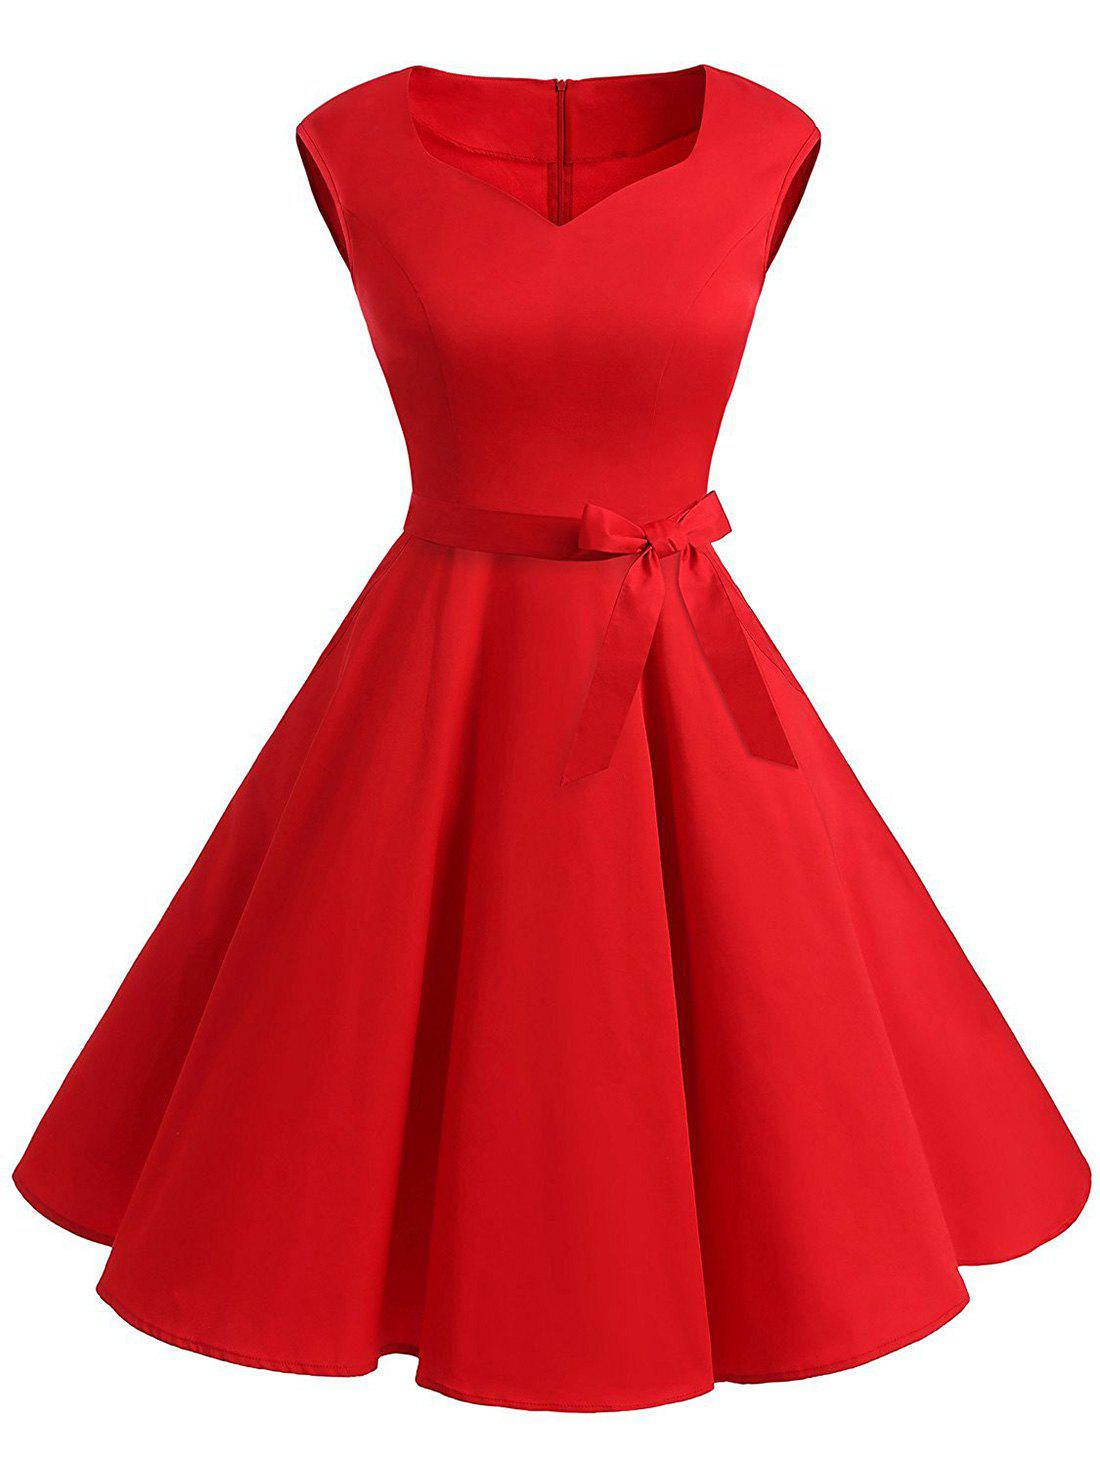 Robe Vintage Pin Up à Col en Forme de Cœur - Rouge XL